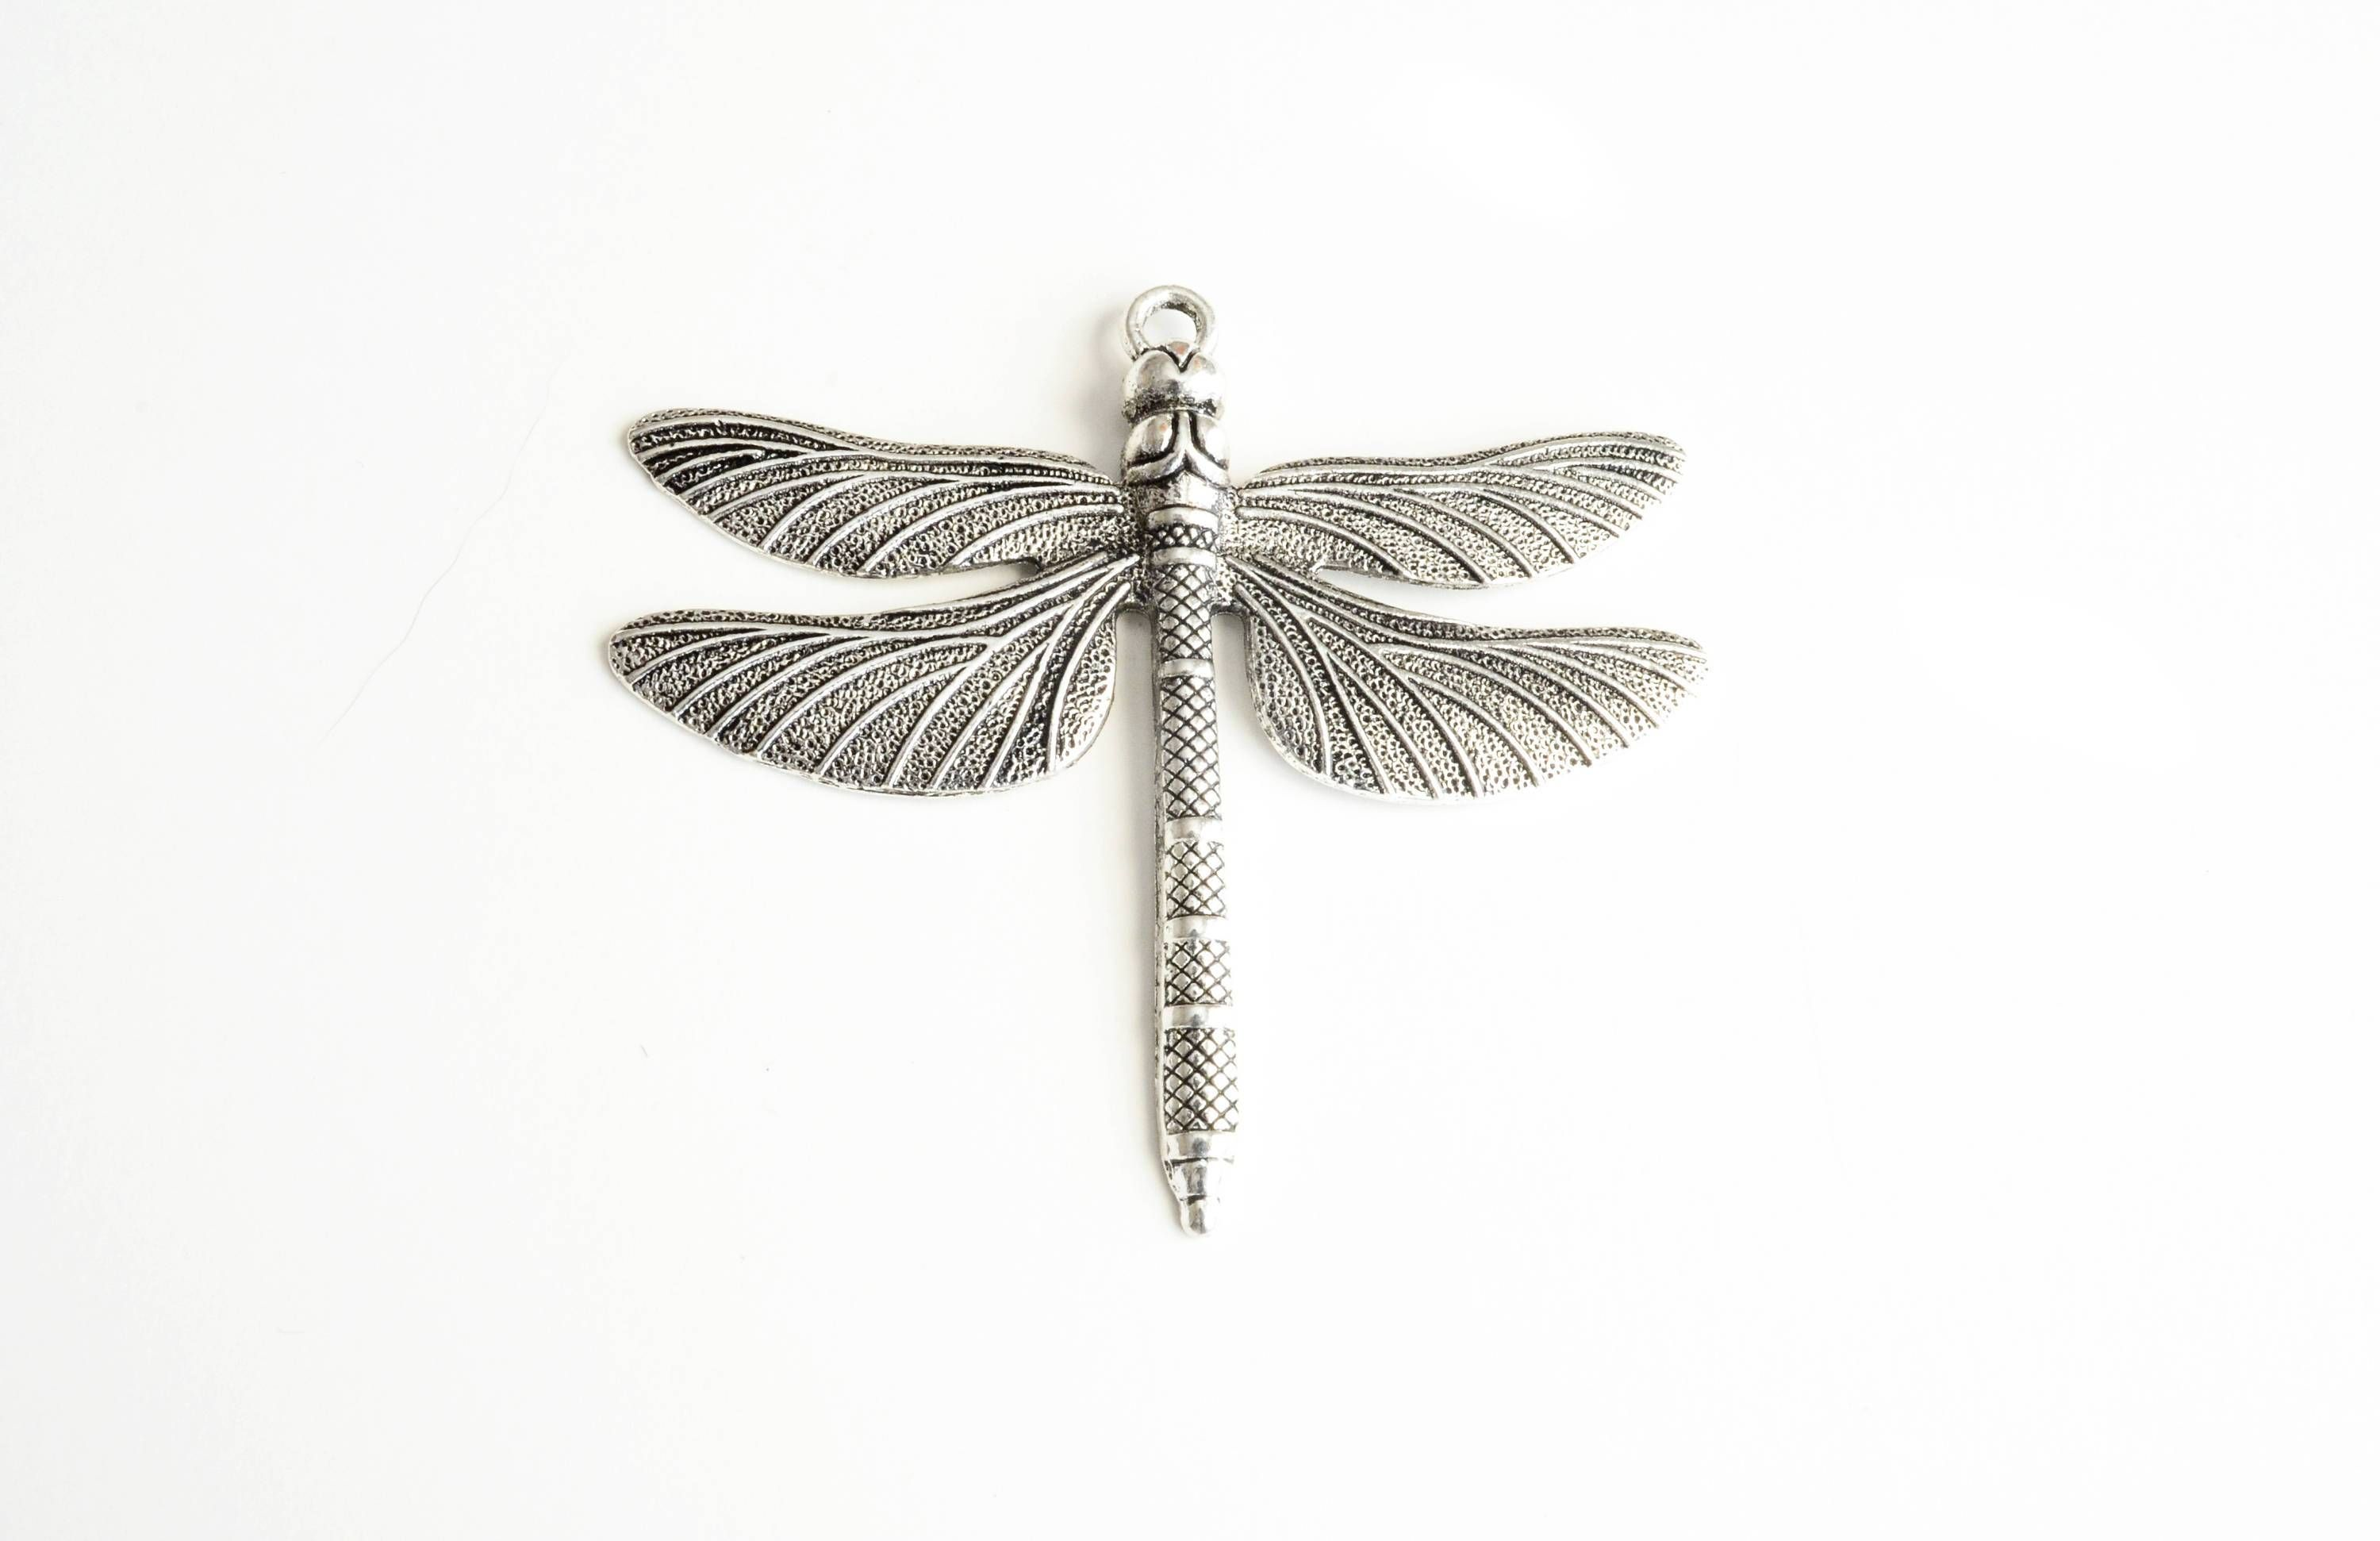 jewelry silver gemstone pendant bone detailproduct beauty handcrafted usd exquisite bali sterling dragonfly